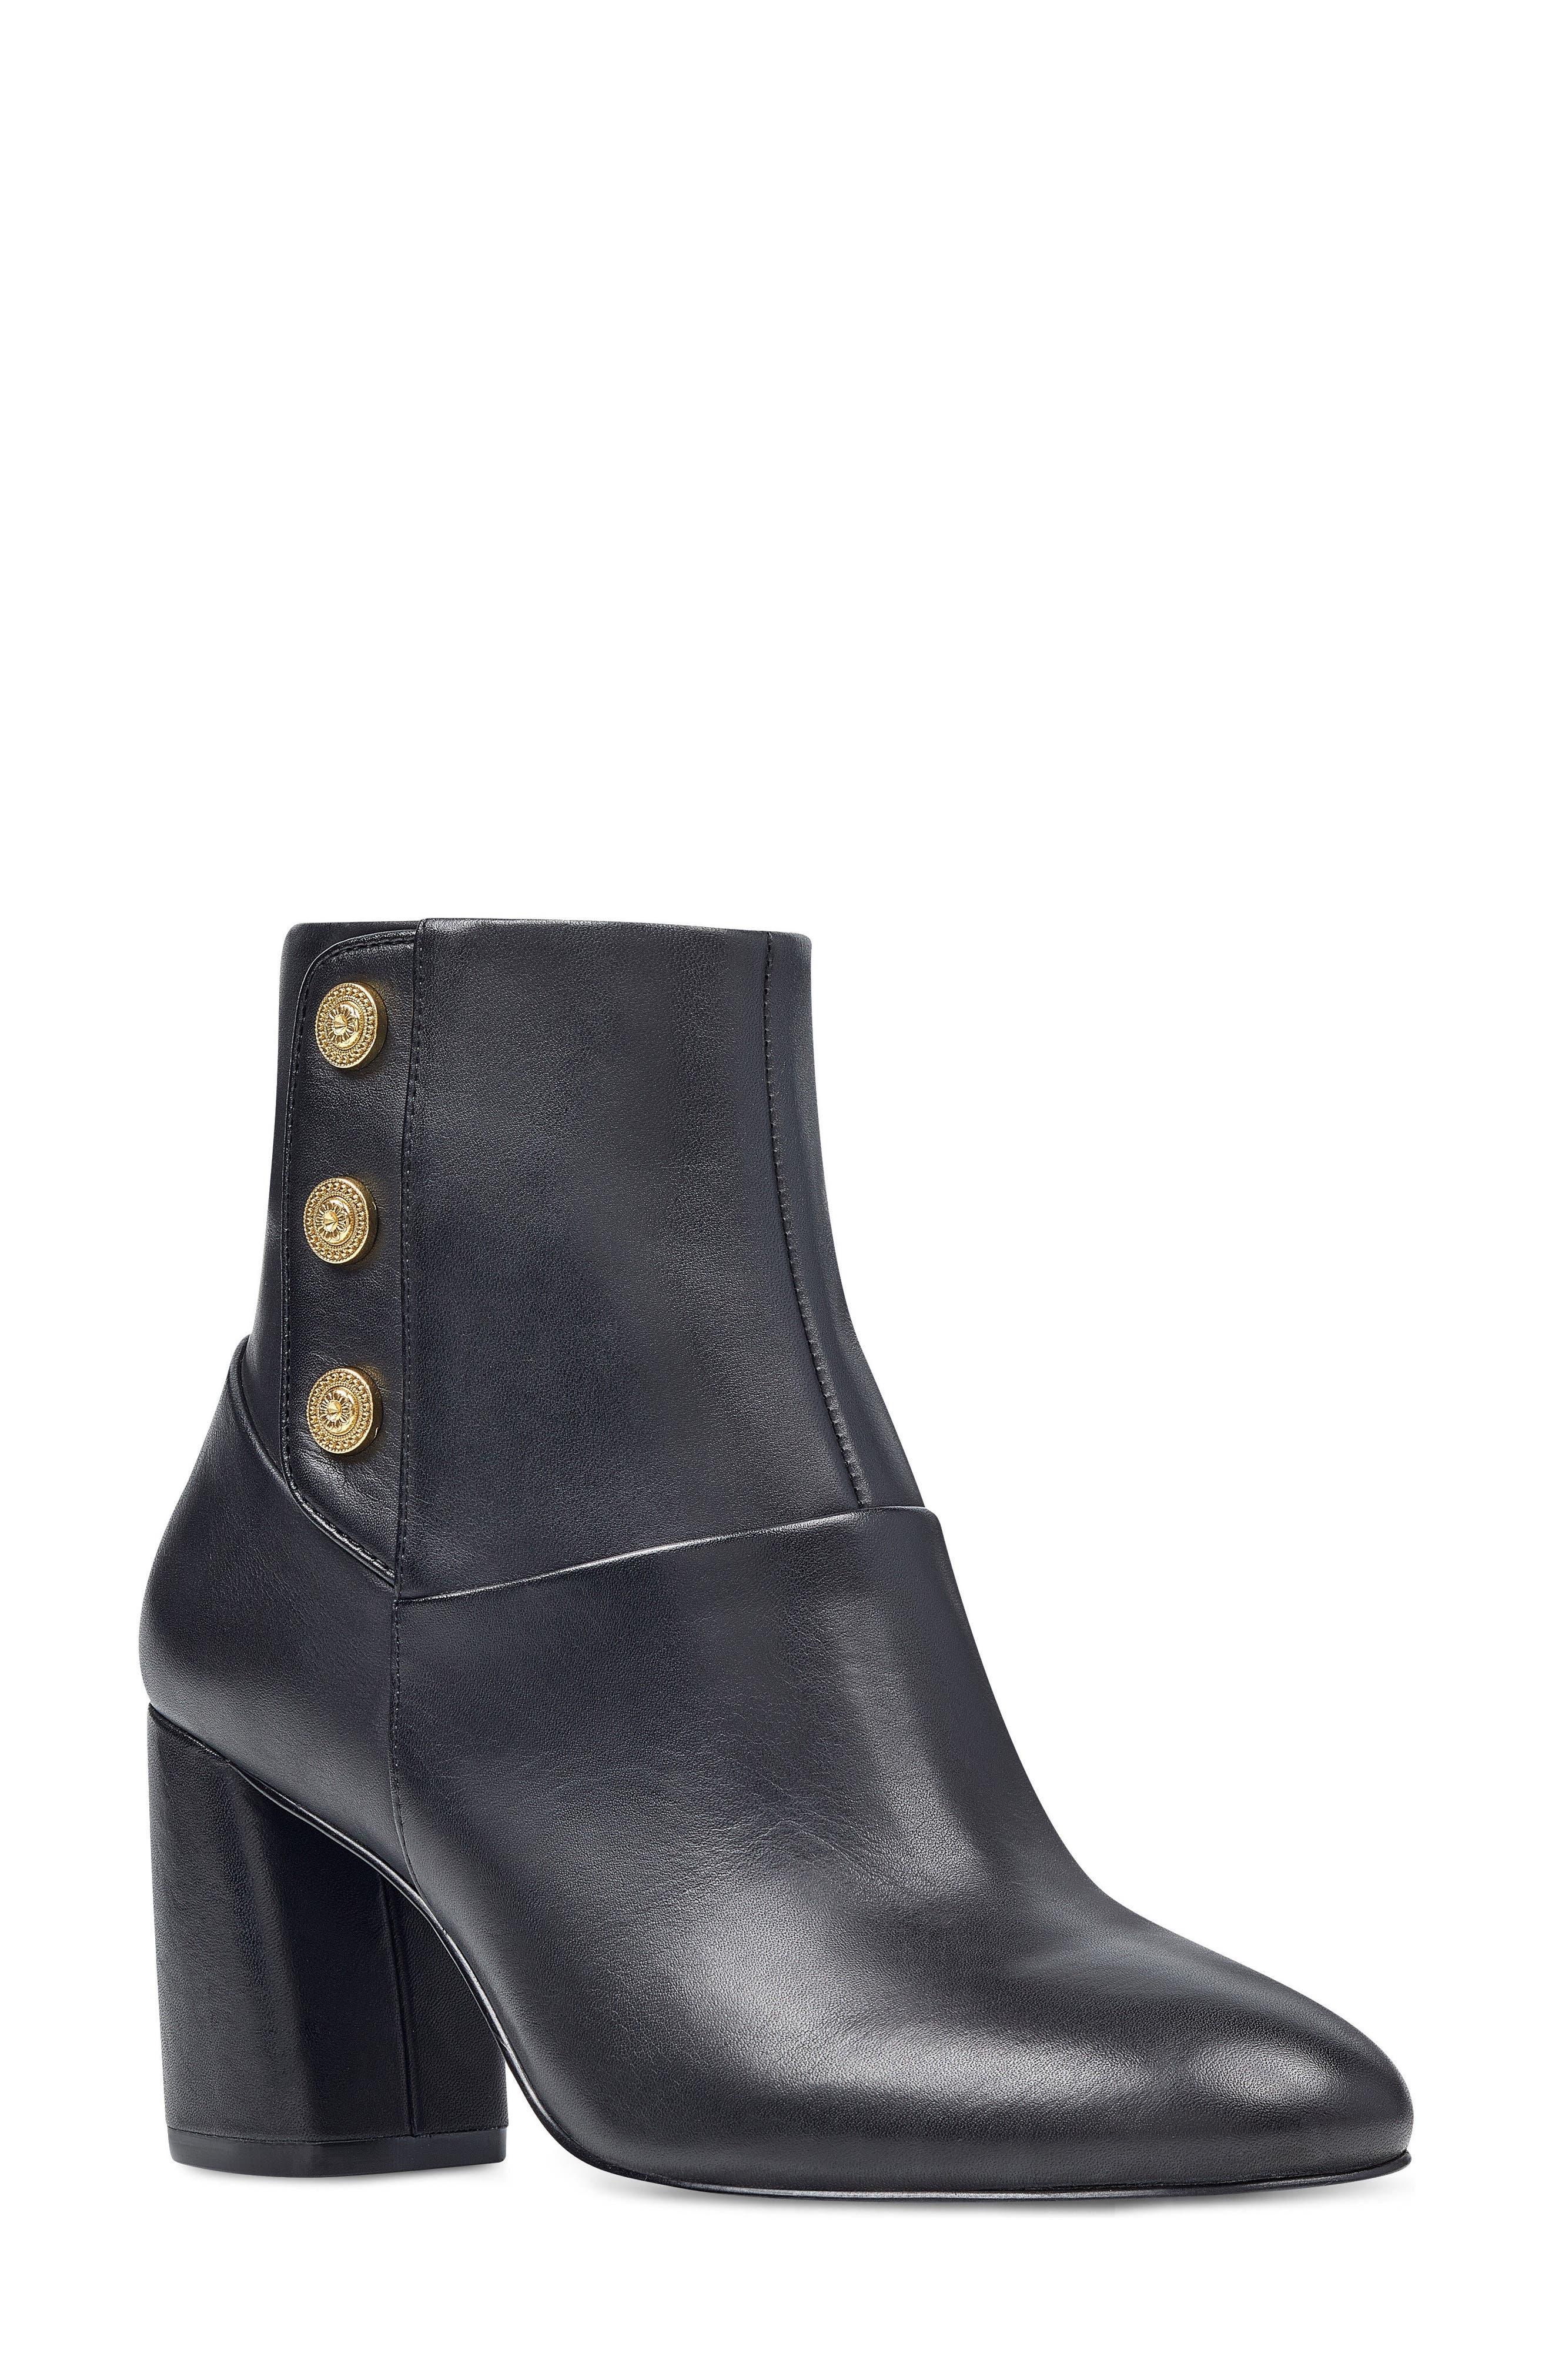 Kirtley Bootie,                         Main,                         color, Black Leather